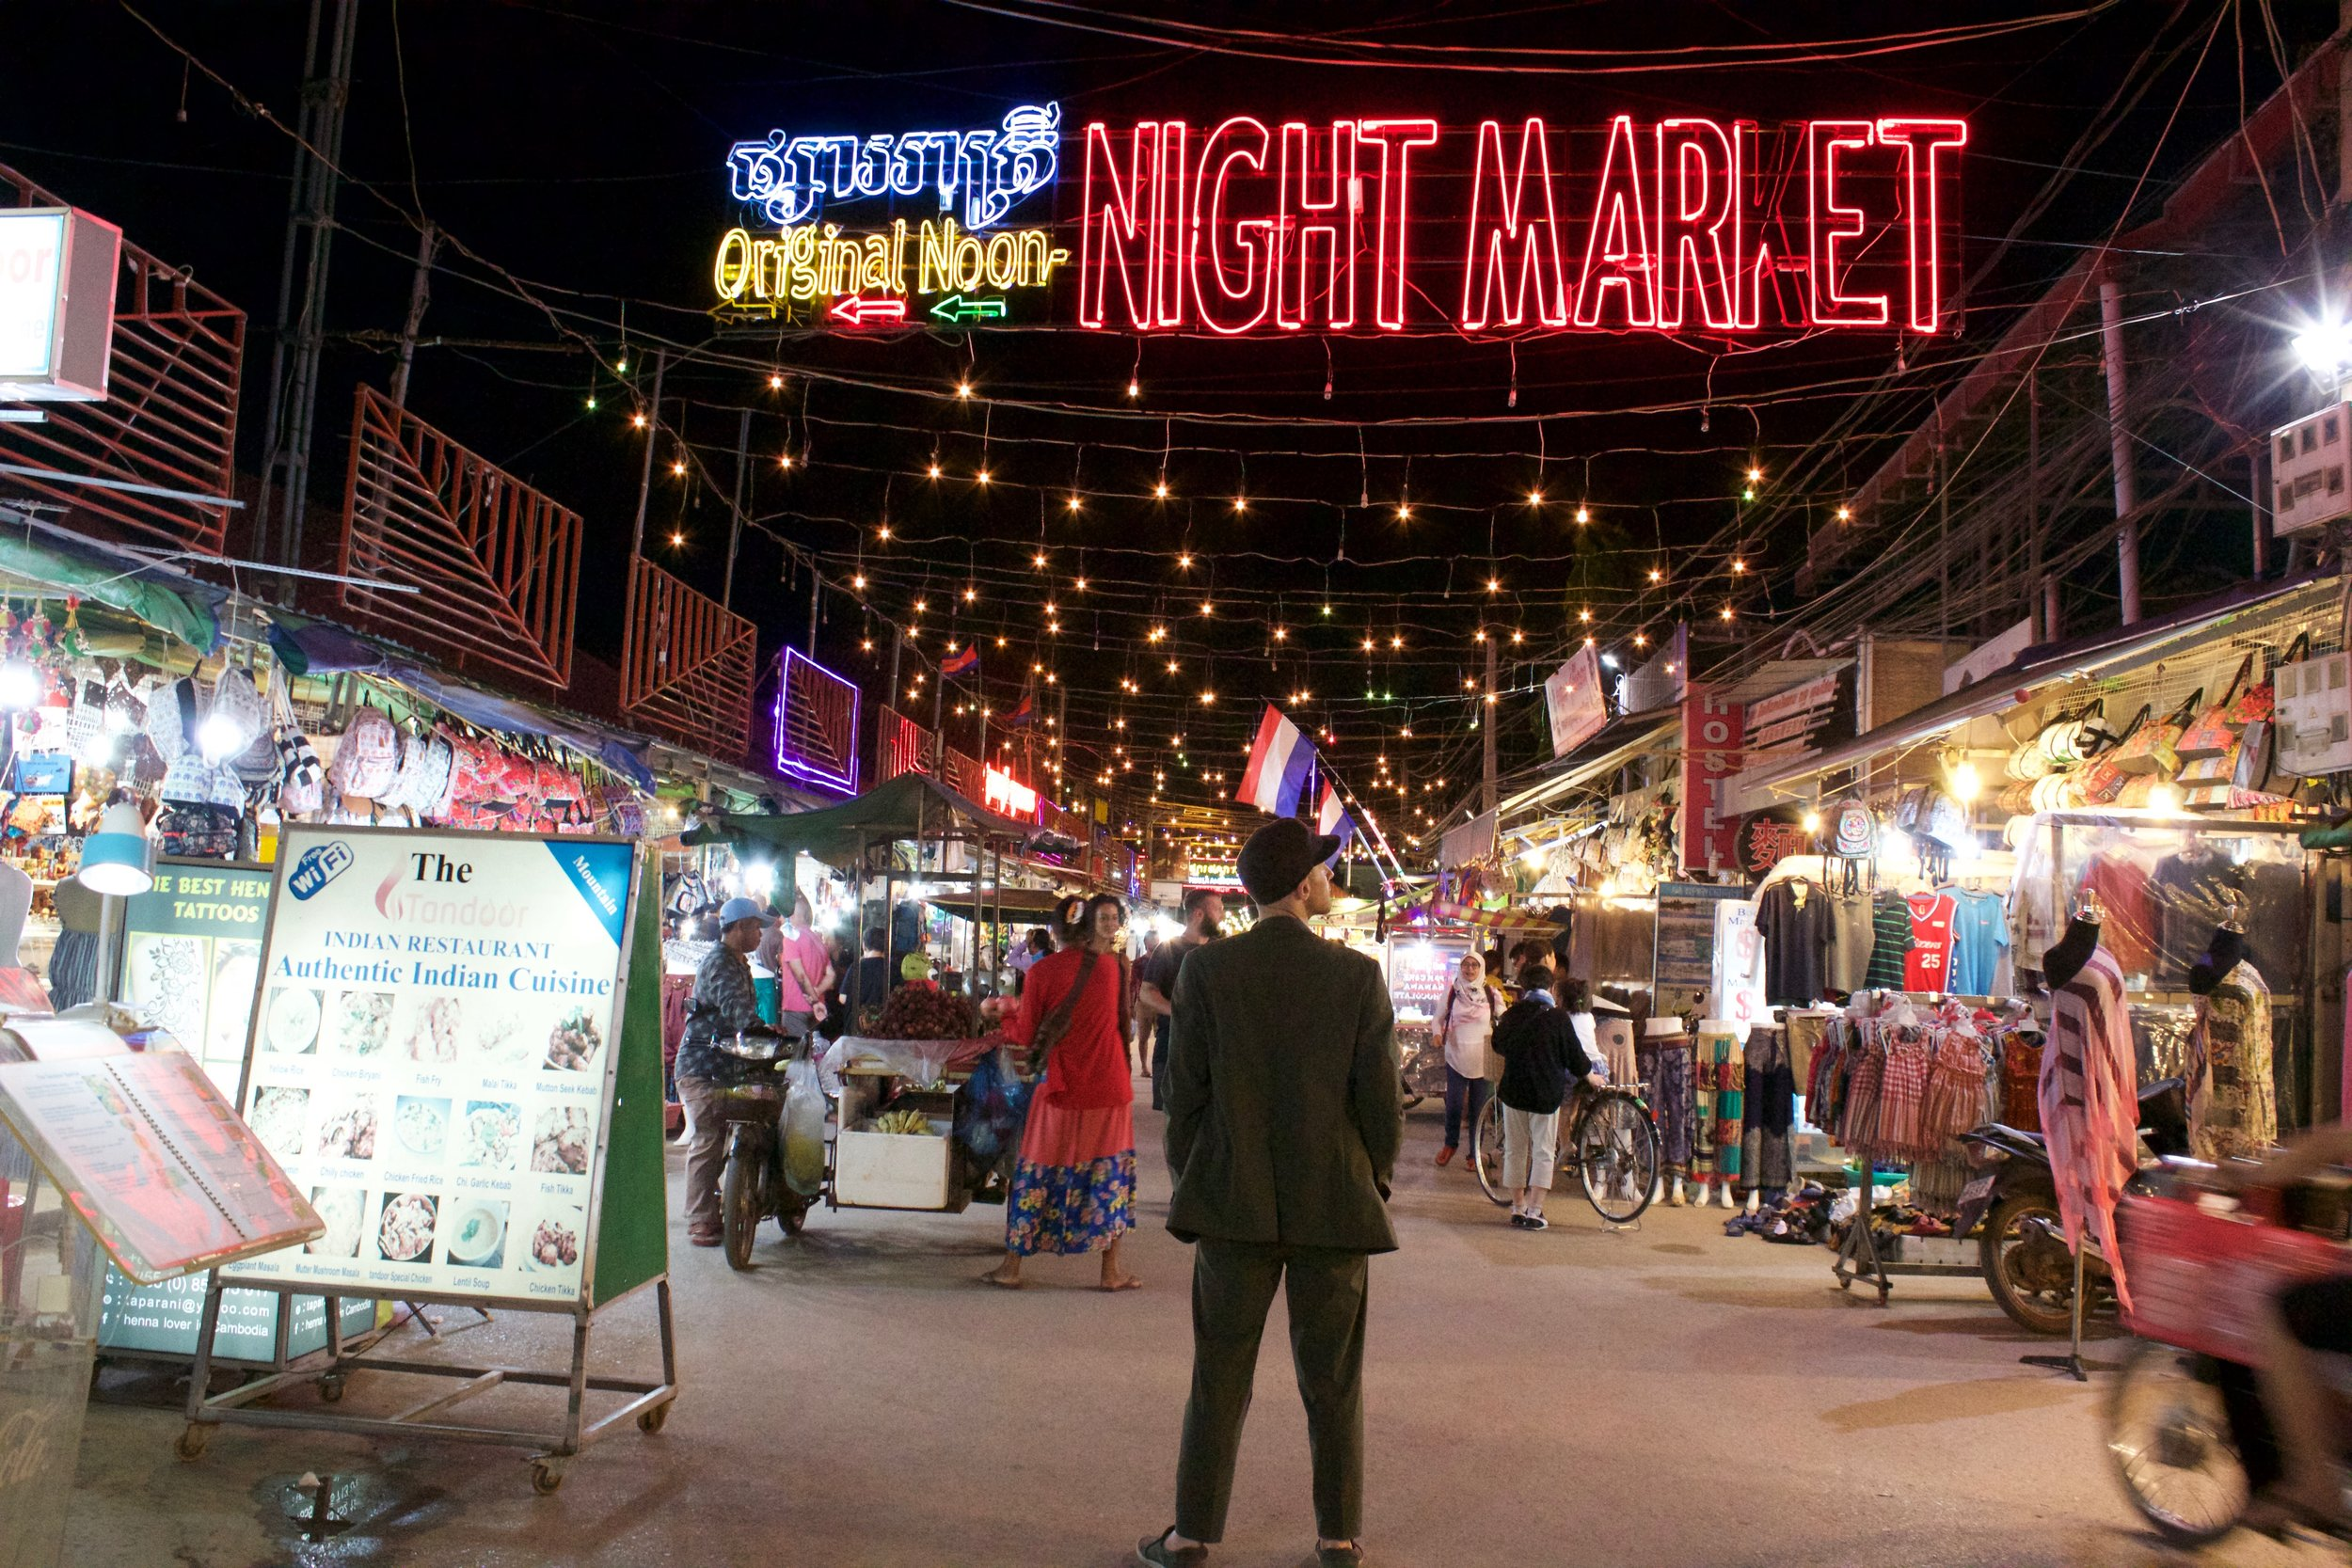 Cambodia-night-market-03.jpg